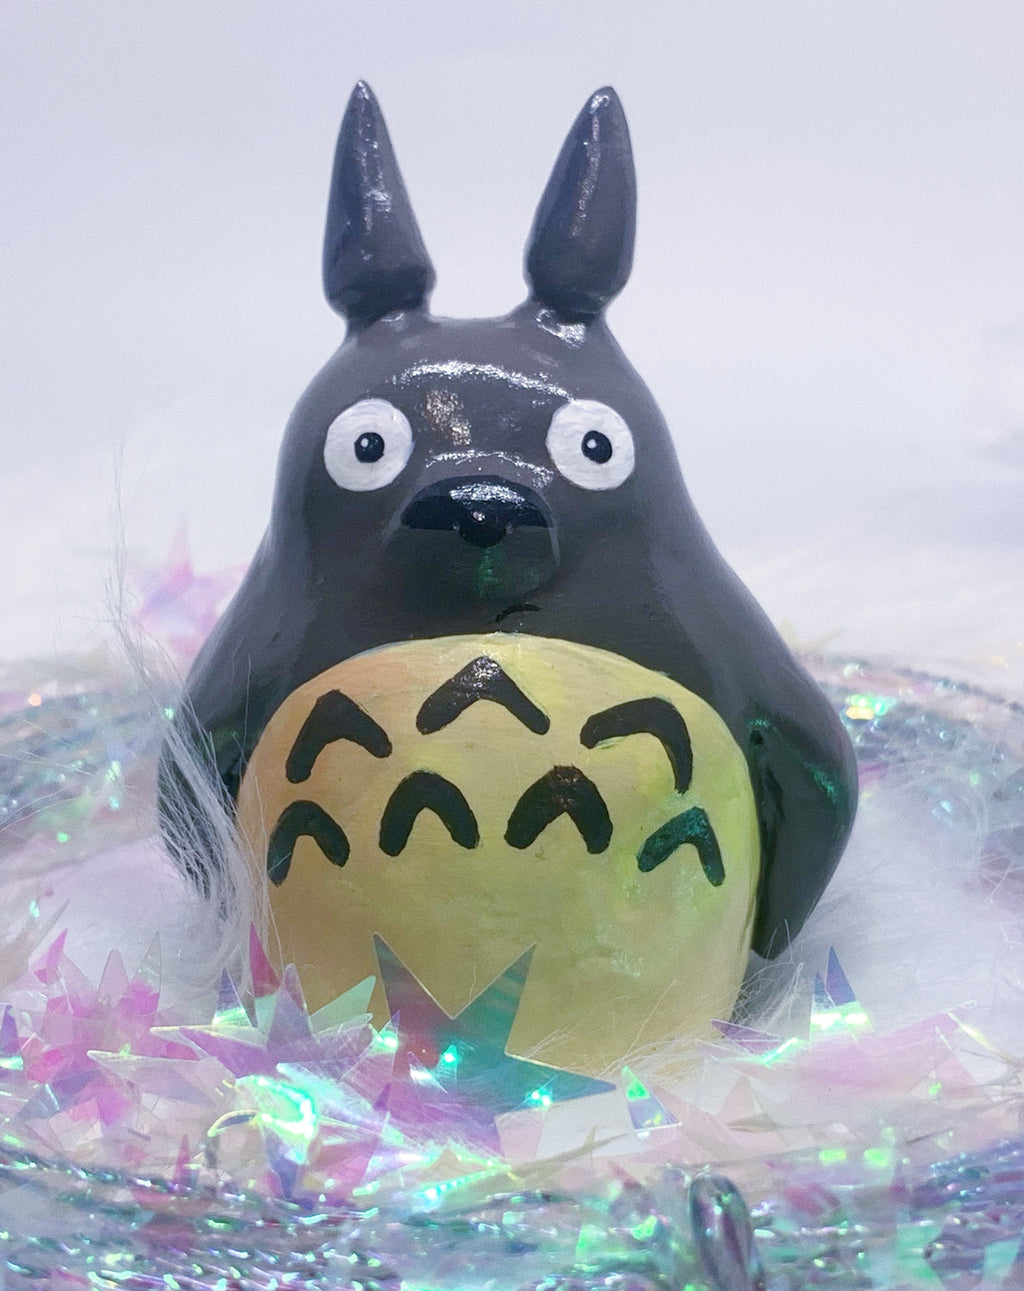 Totoro Incense Holder